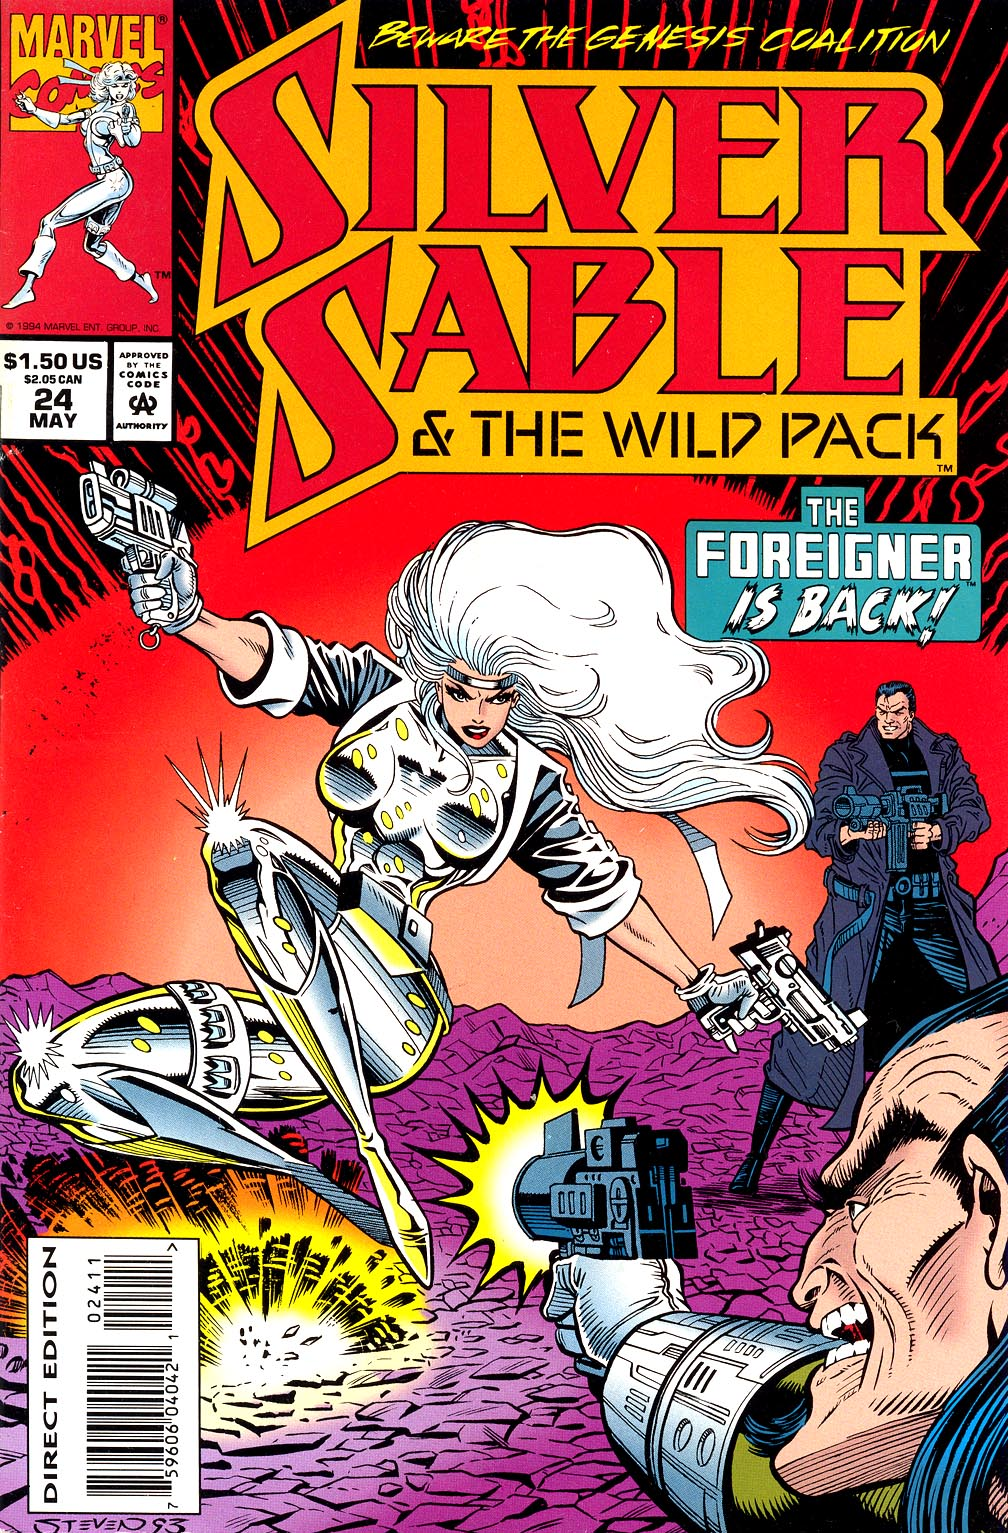 Read online Silver Sable and the Wild Pack comic -  Issue #24 - 2